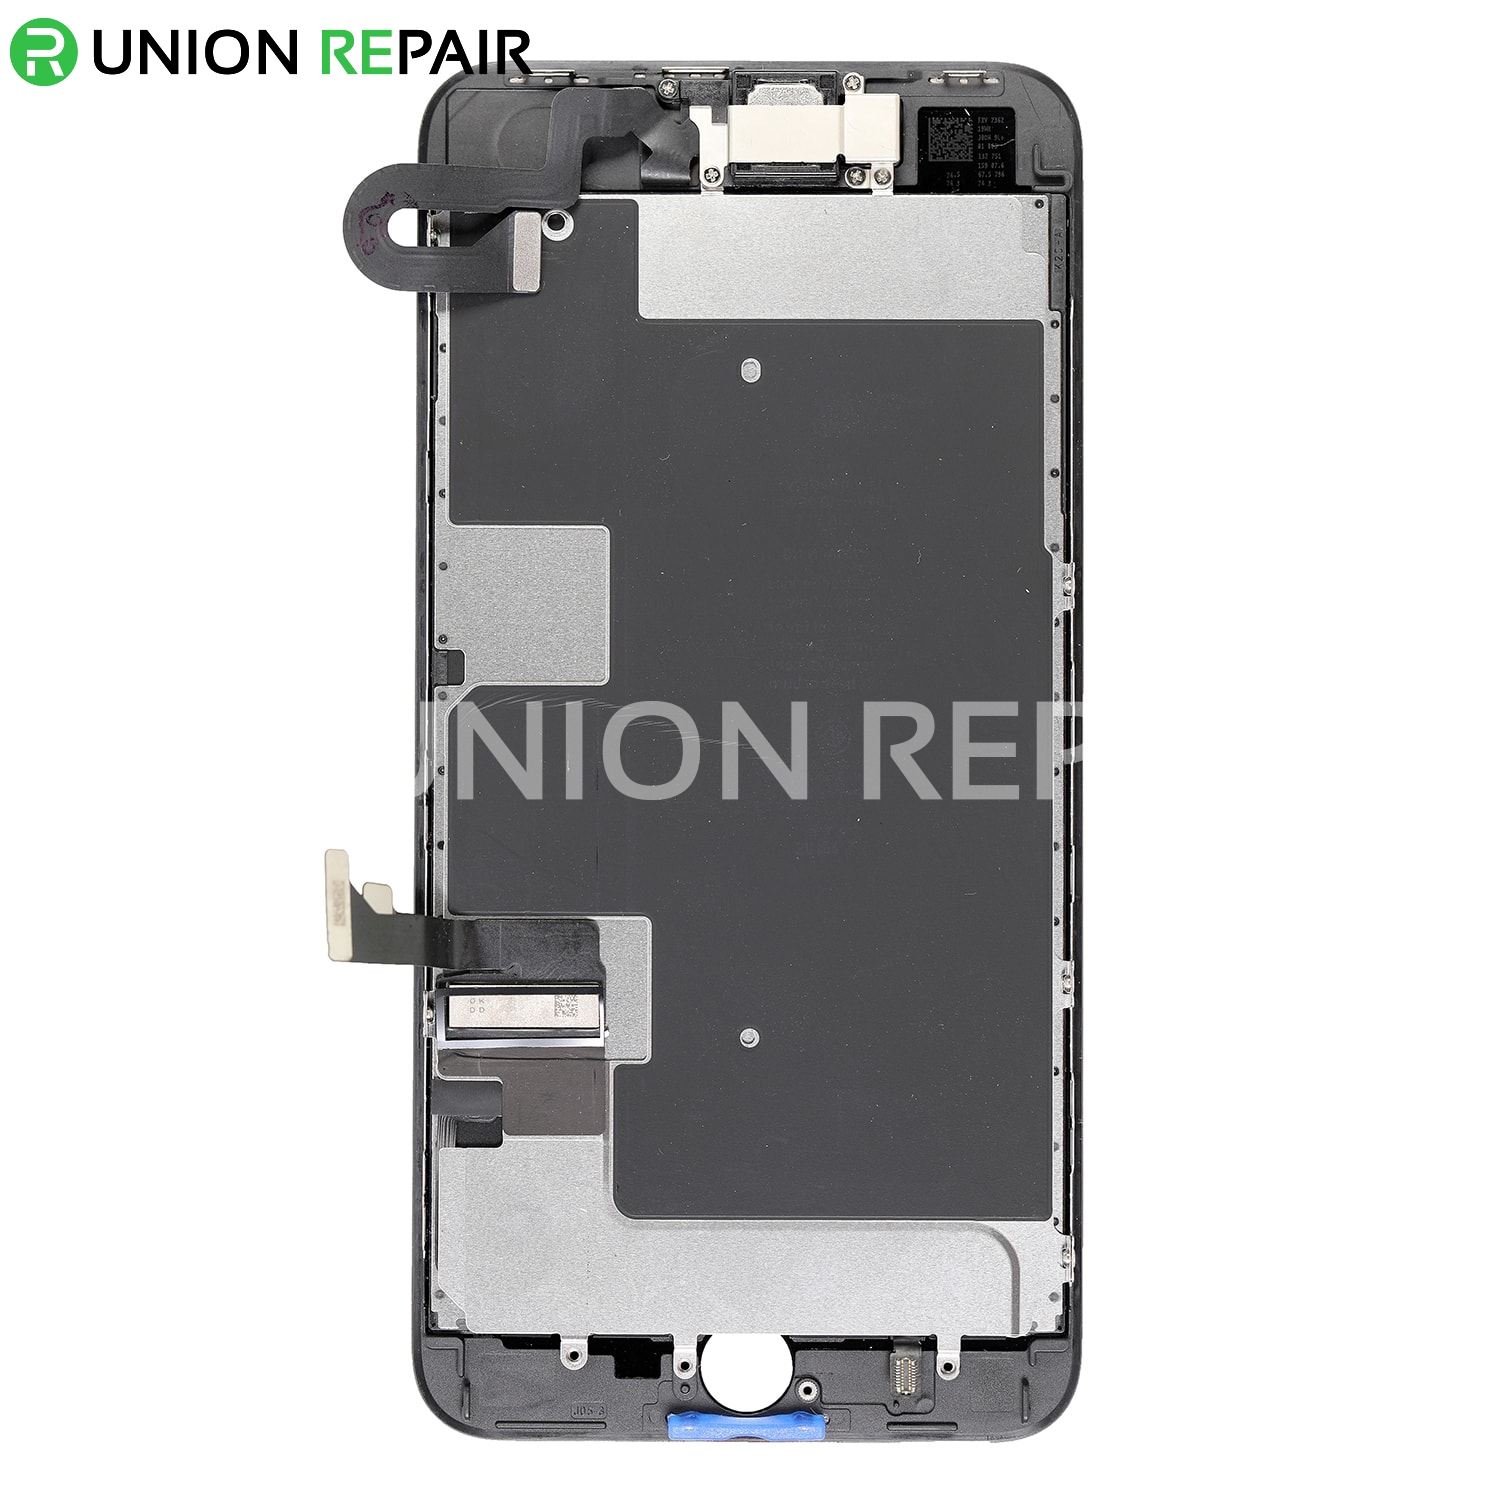 cheap for discount 1e1e5 871de Replacement for iPhone 8 Plus LCD Screen Full Assembly without Home Button  - Black